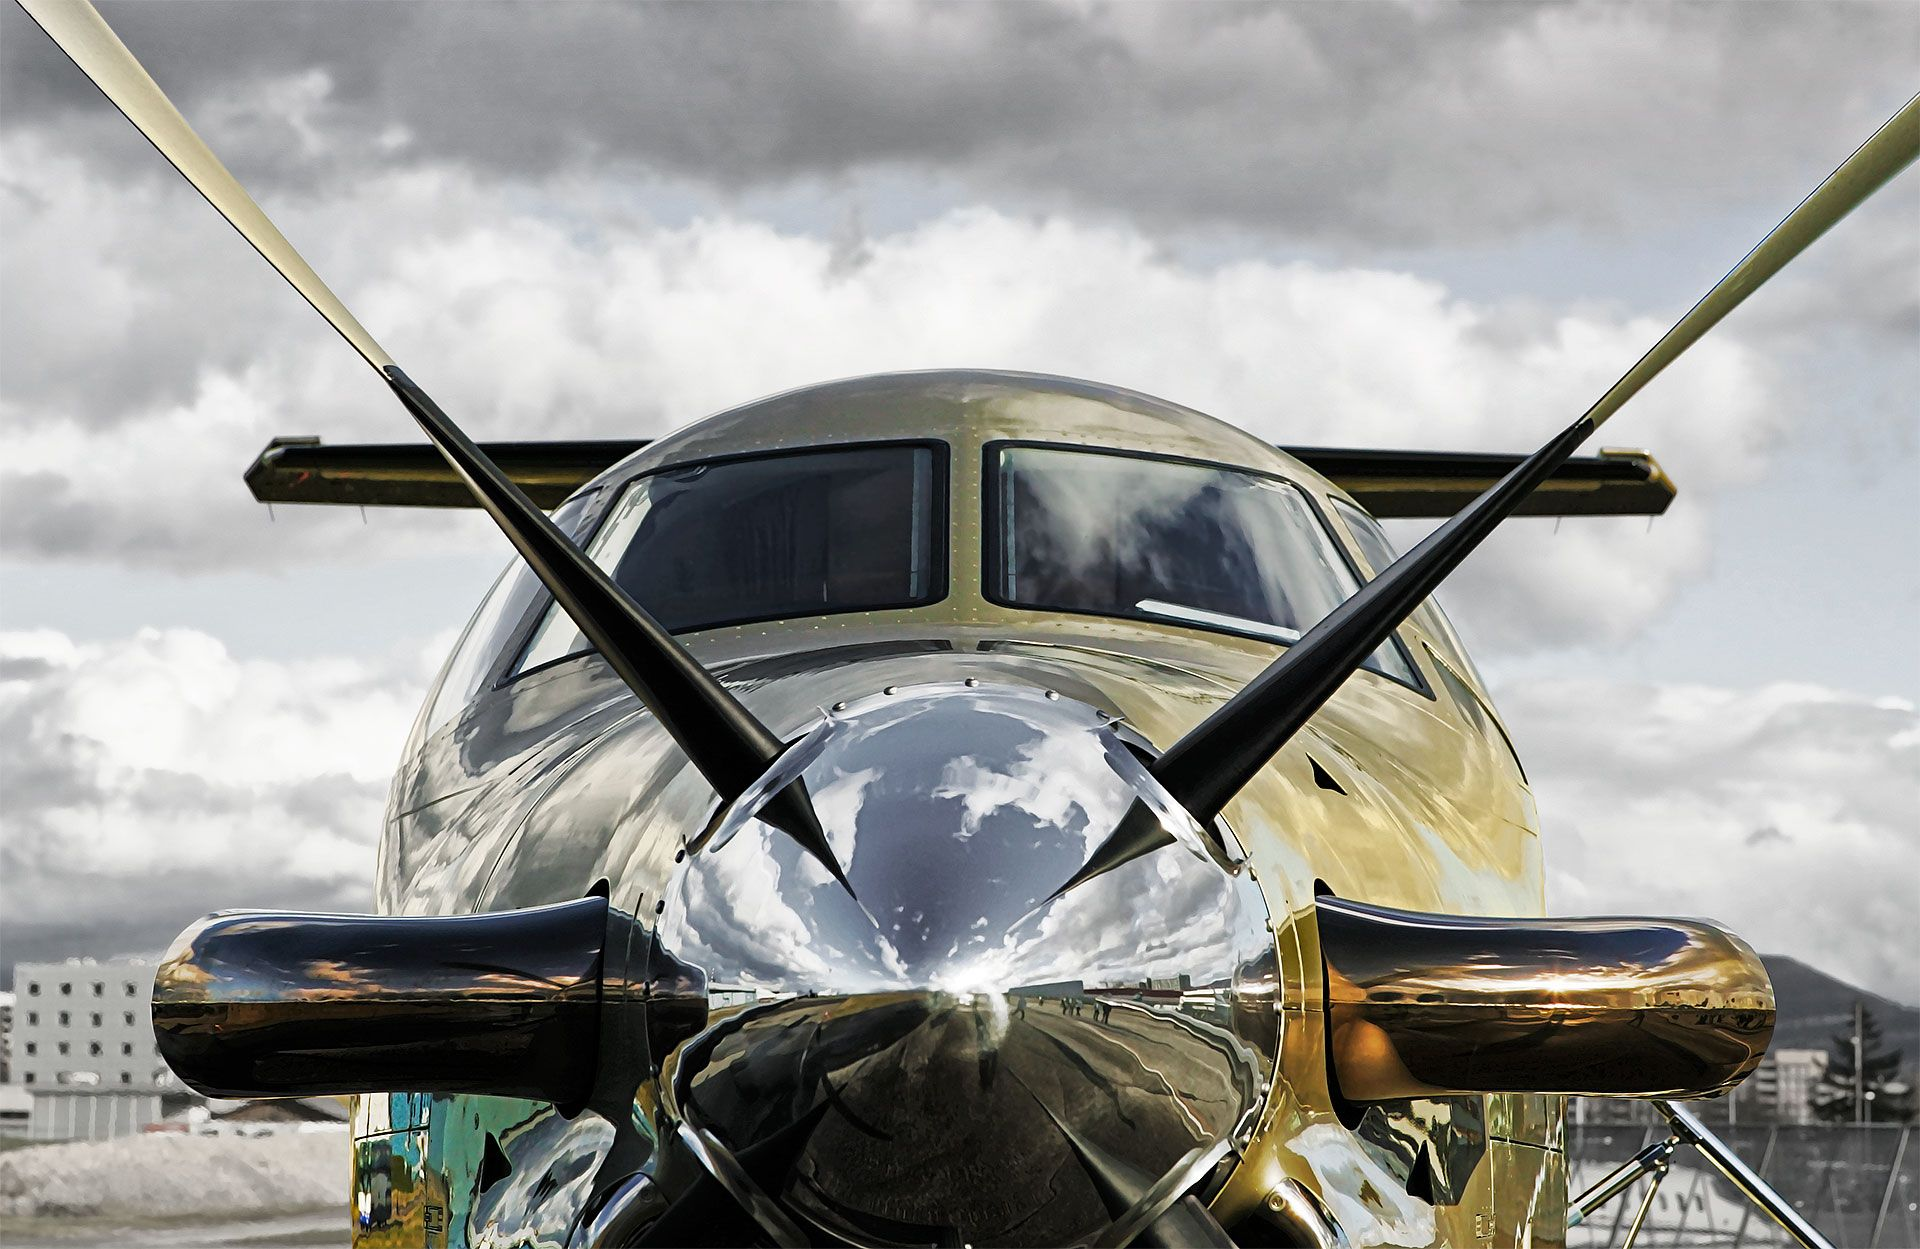 Wings & Bridges Pilatus PC-12 Front View